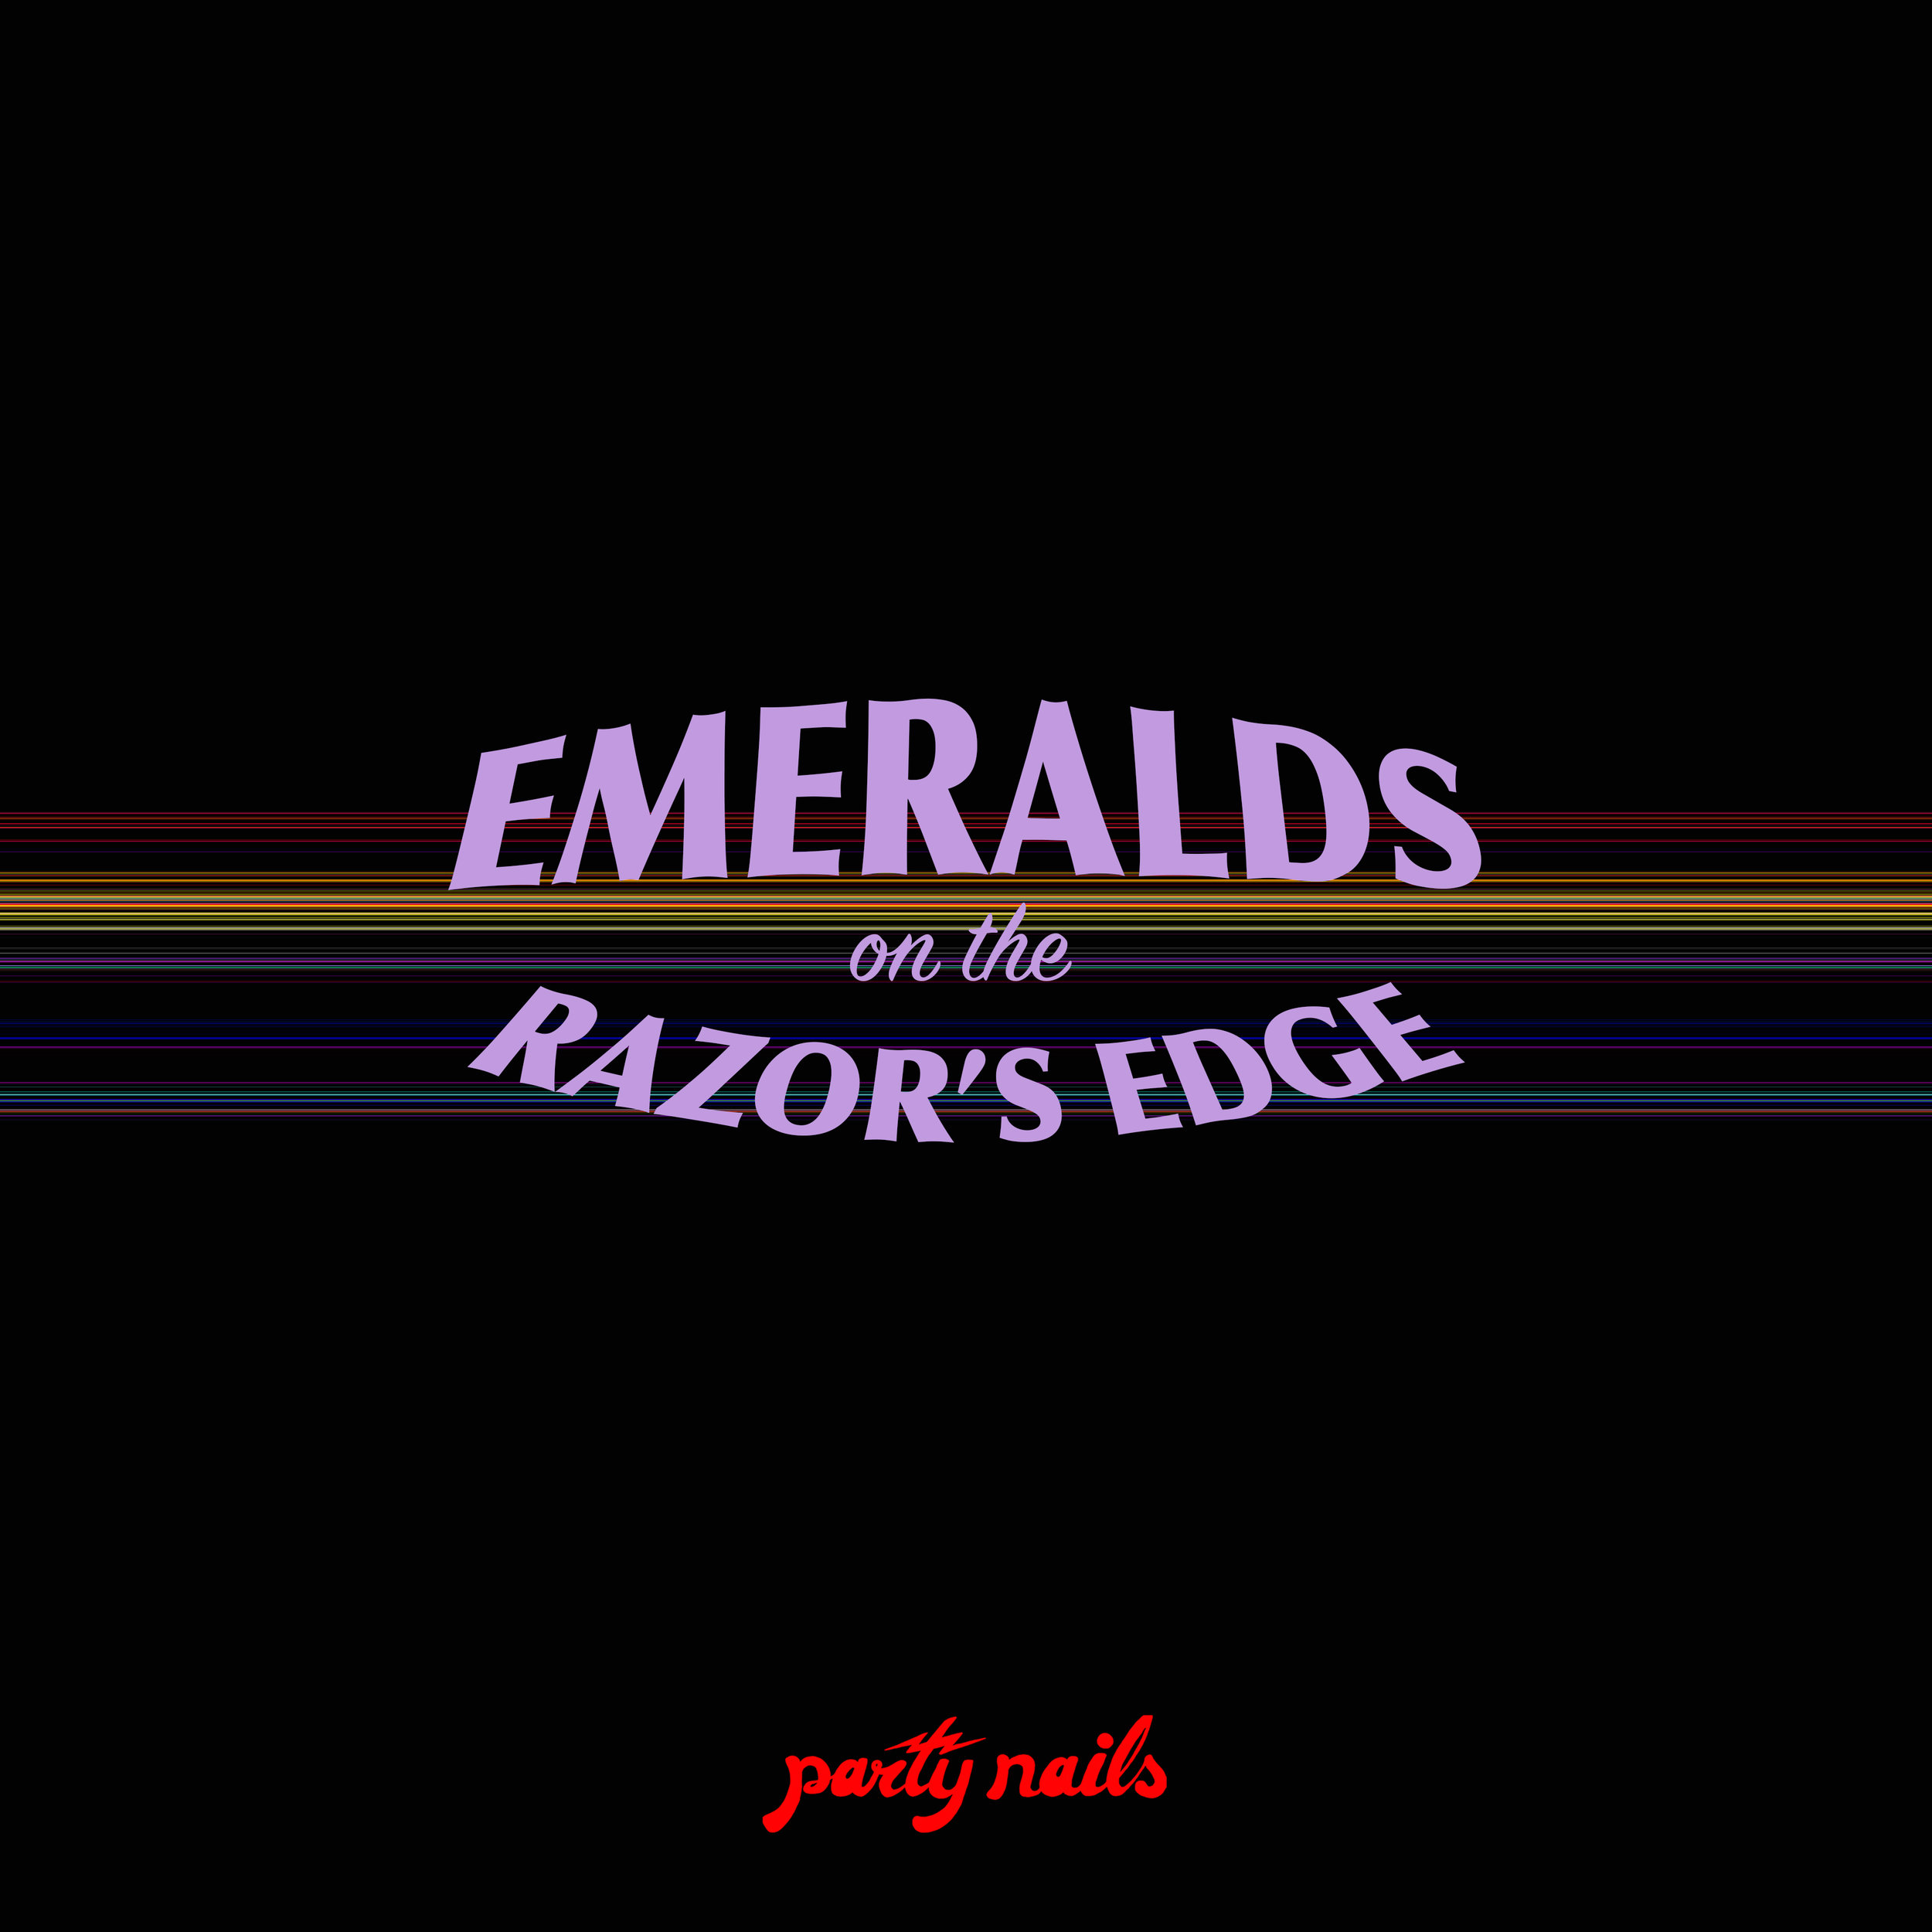 emeralds front cover.JPG